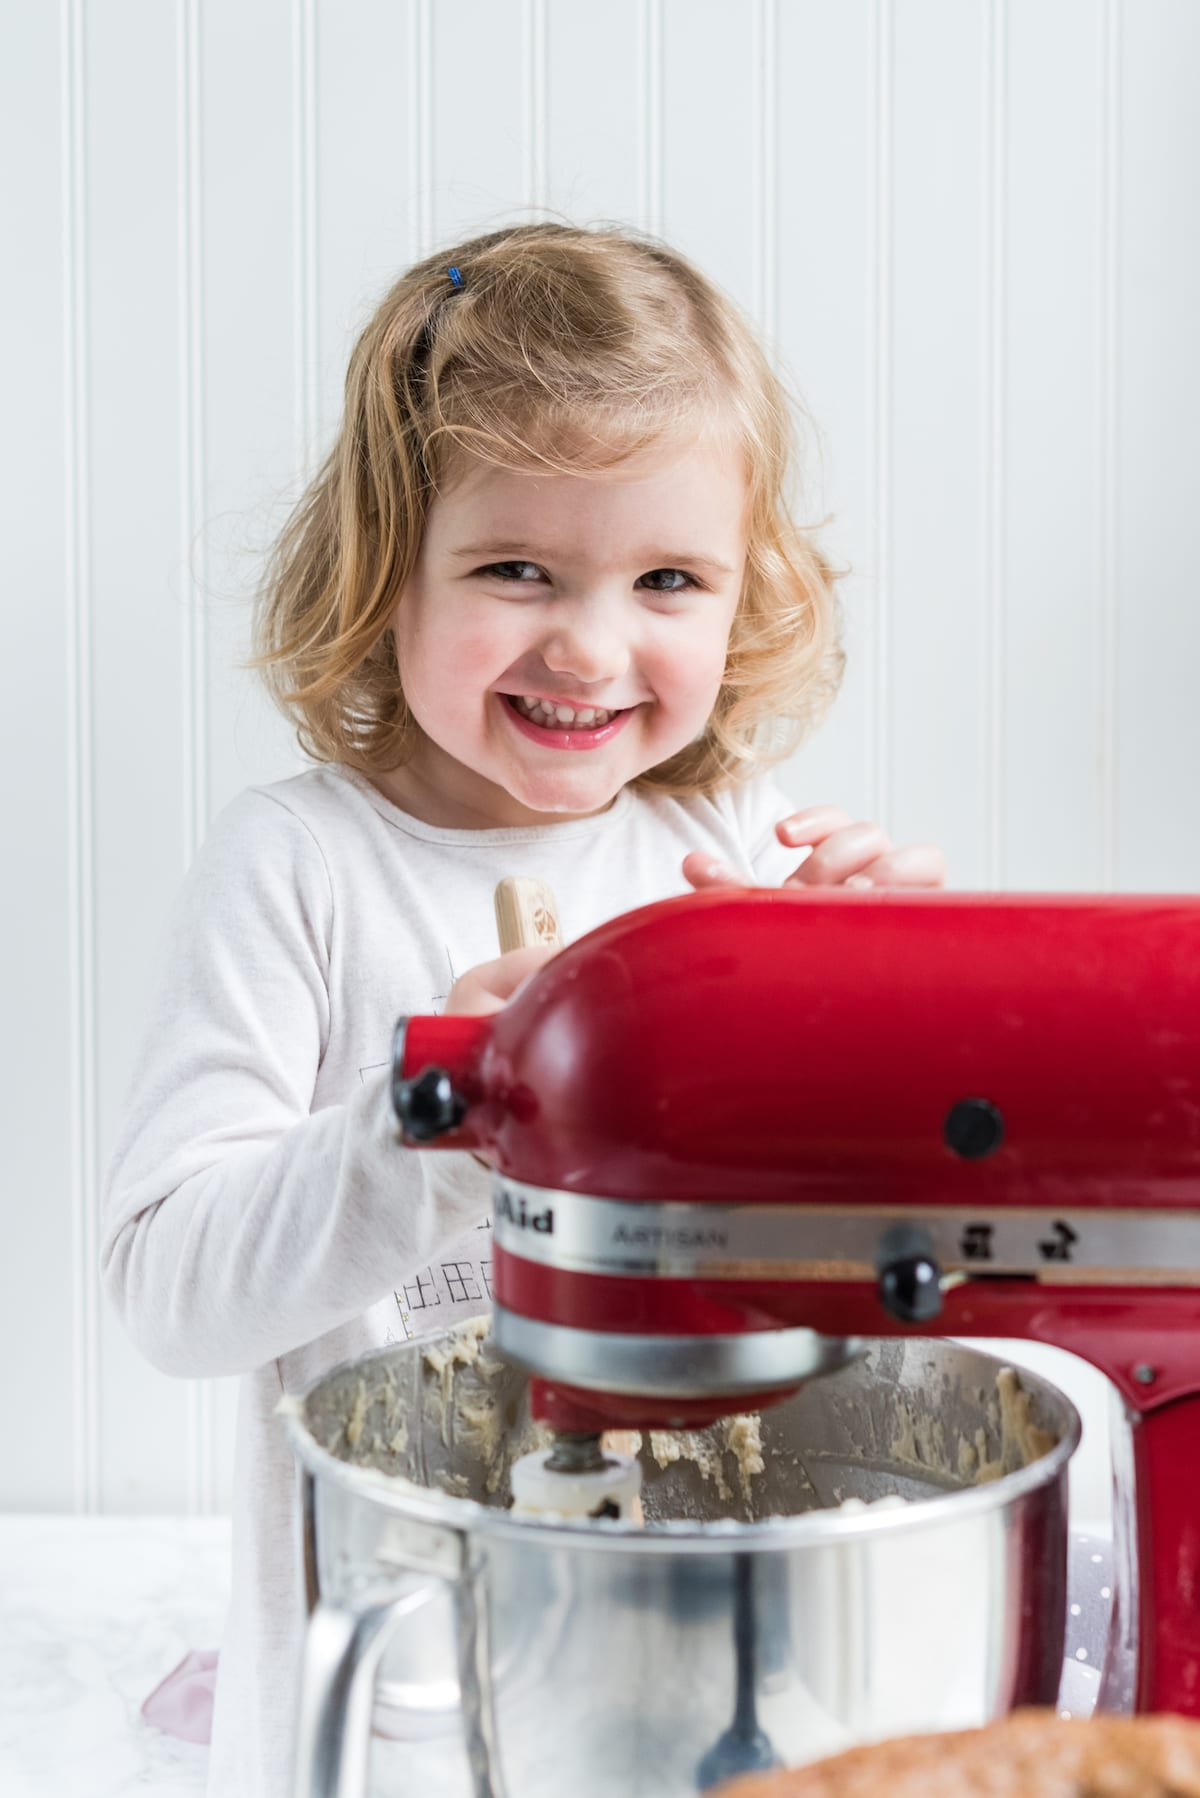 Tips for Baking with Kids and Easy Baking Recipes for Kids | Christmas entertaining, Christmas baking, Christmas cookie recipes and entertaining tips from entertaining blog @cydconverse